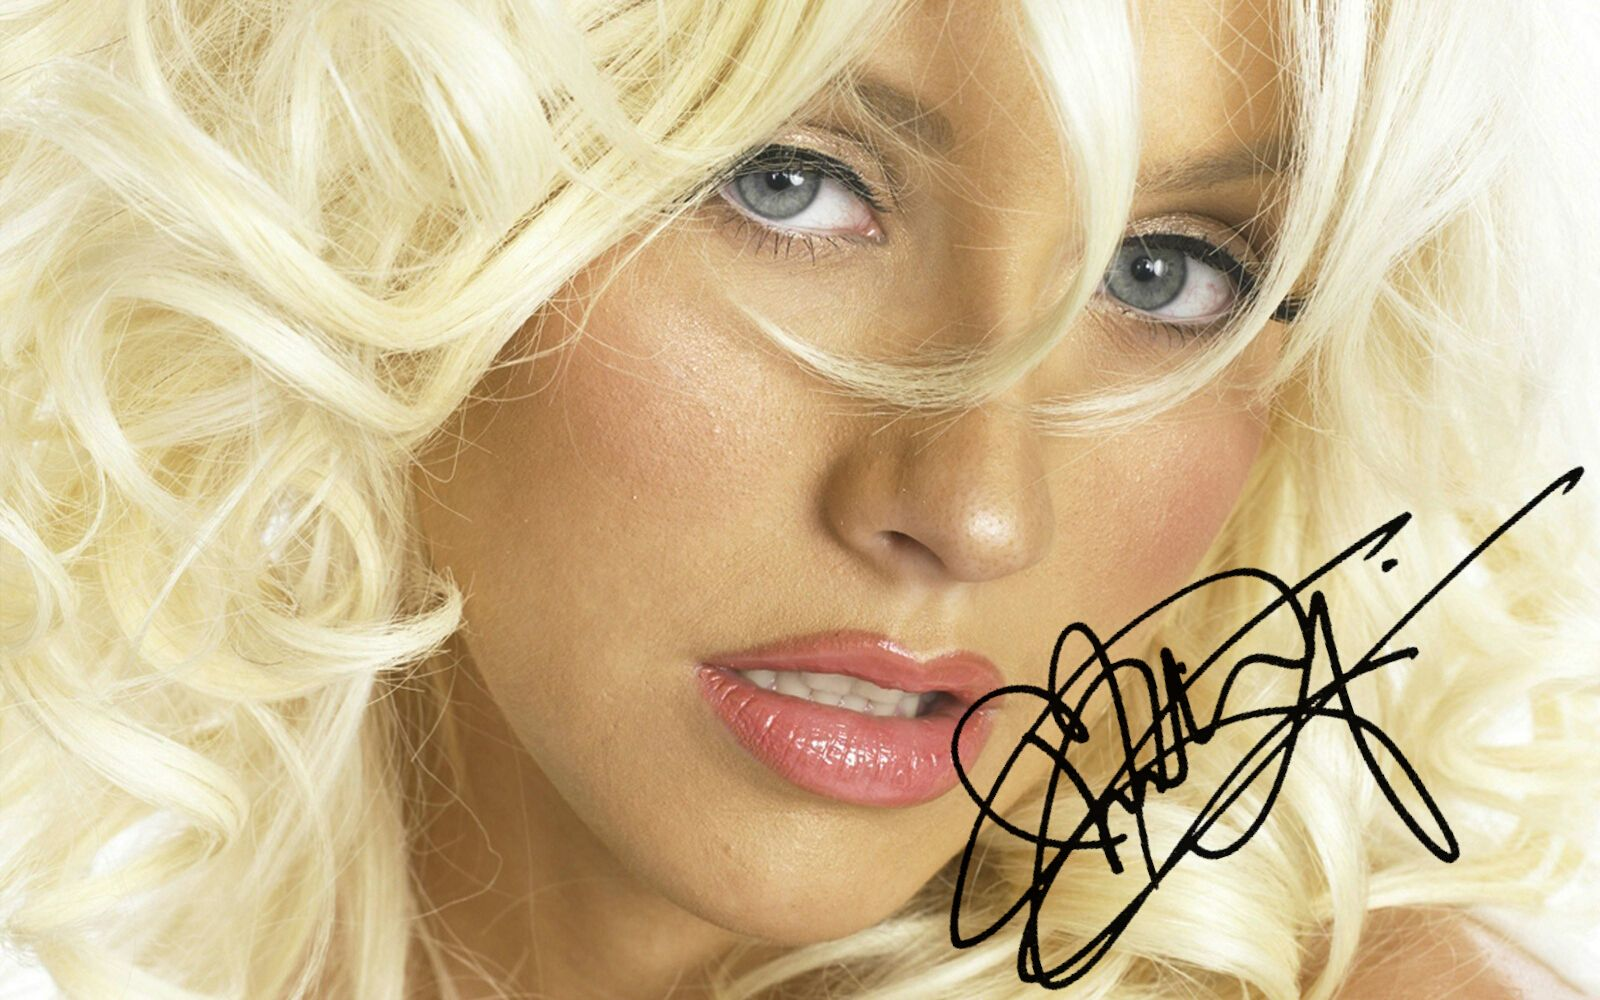 Christina Aguilera Personally Signed This Cool Picture Printed On High Quality Canvas Christina Aguile Christina Aguilera Christina Christina Maria Aguilera